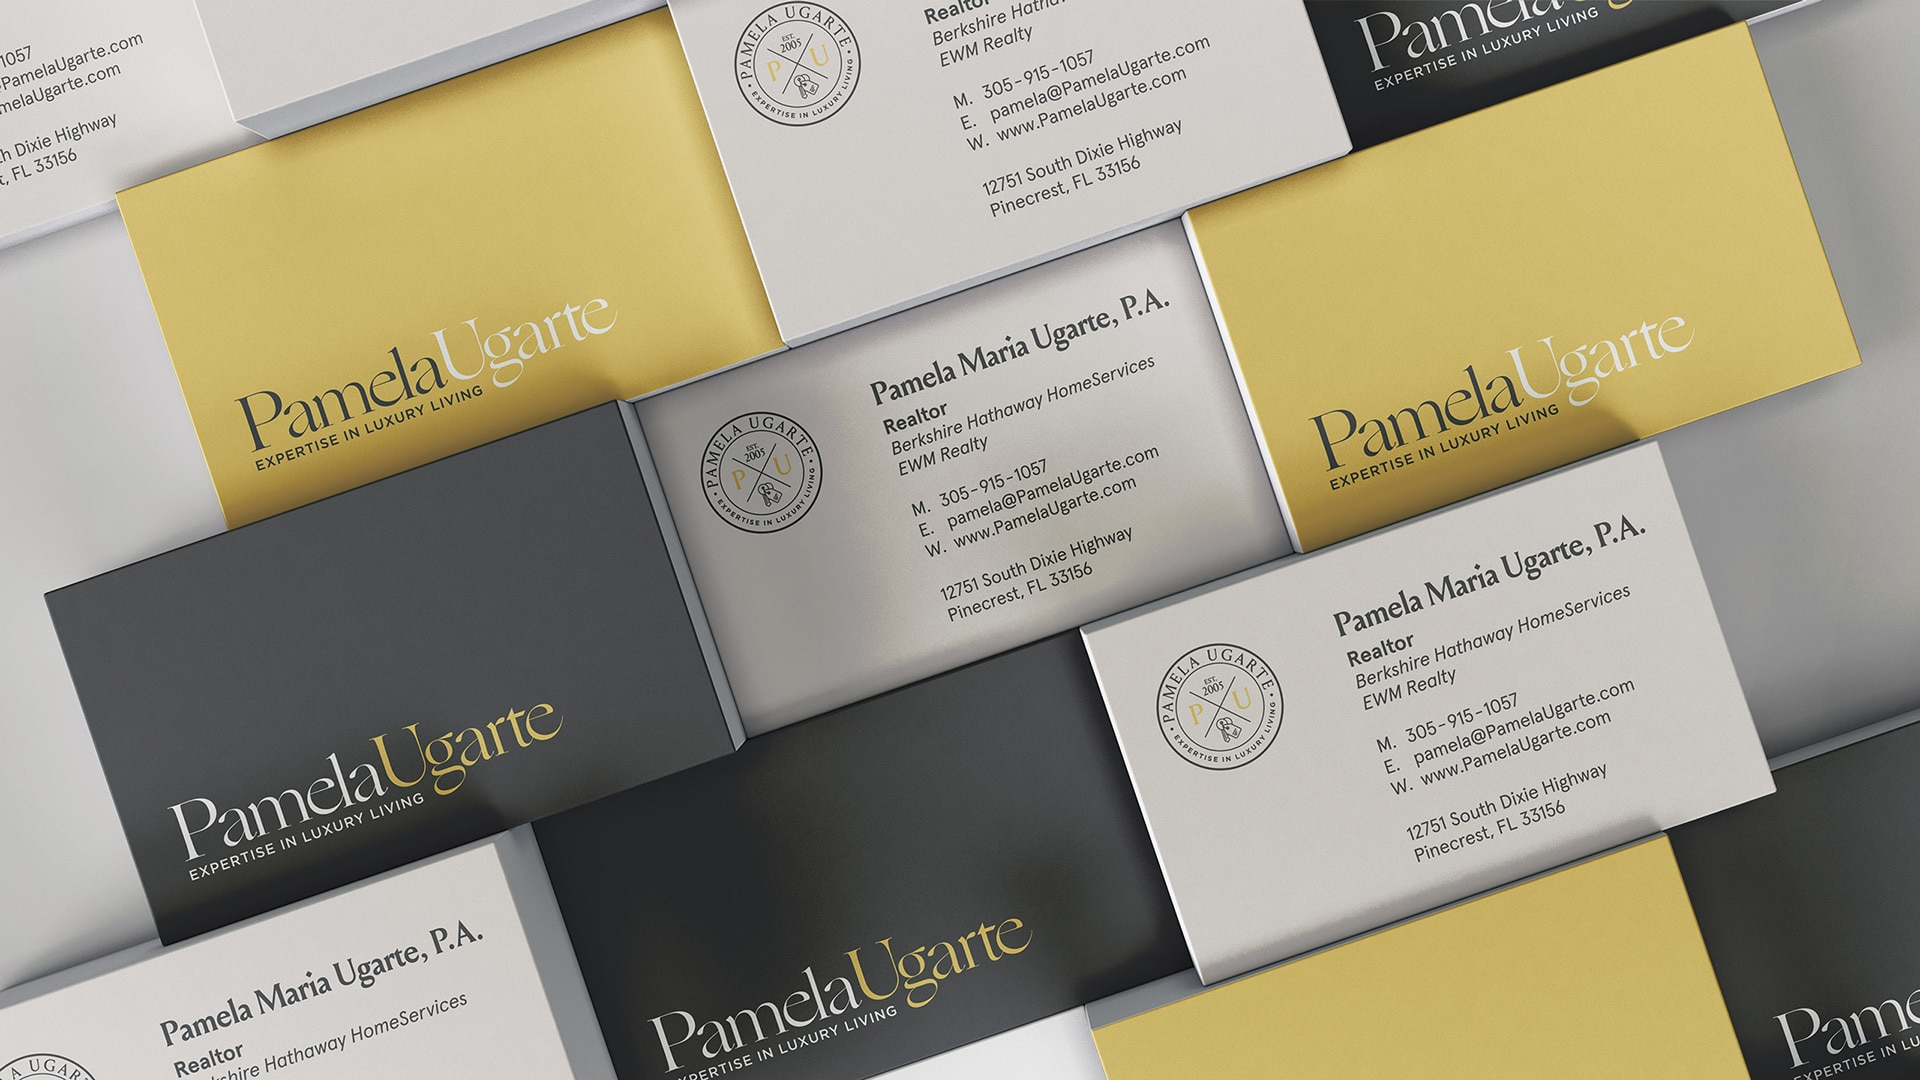 fitosophy-pamela-ugarte-business-cards